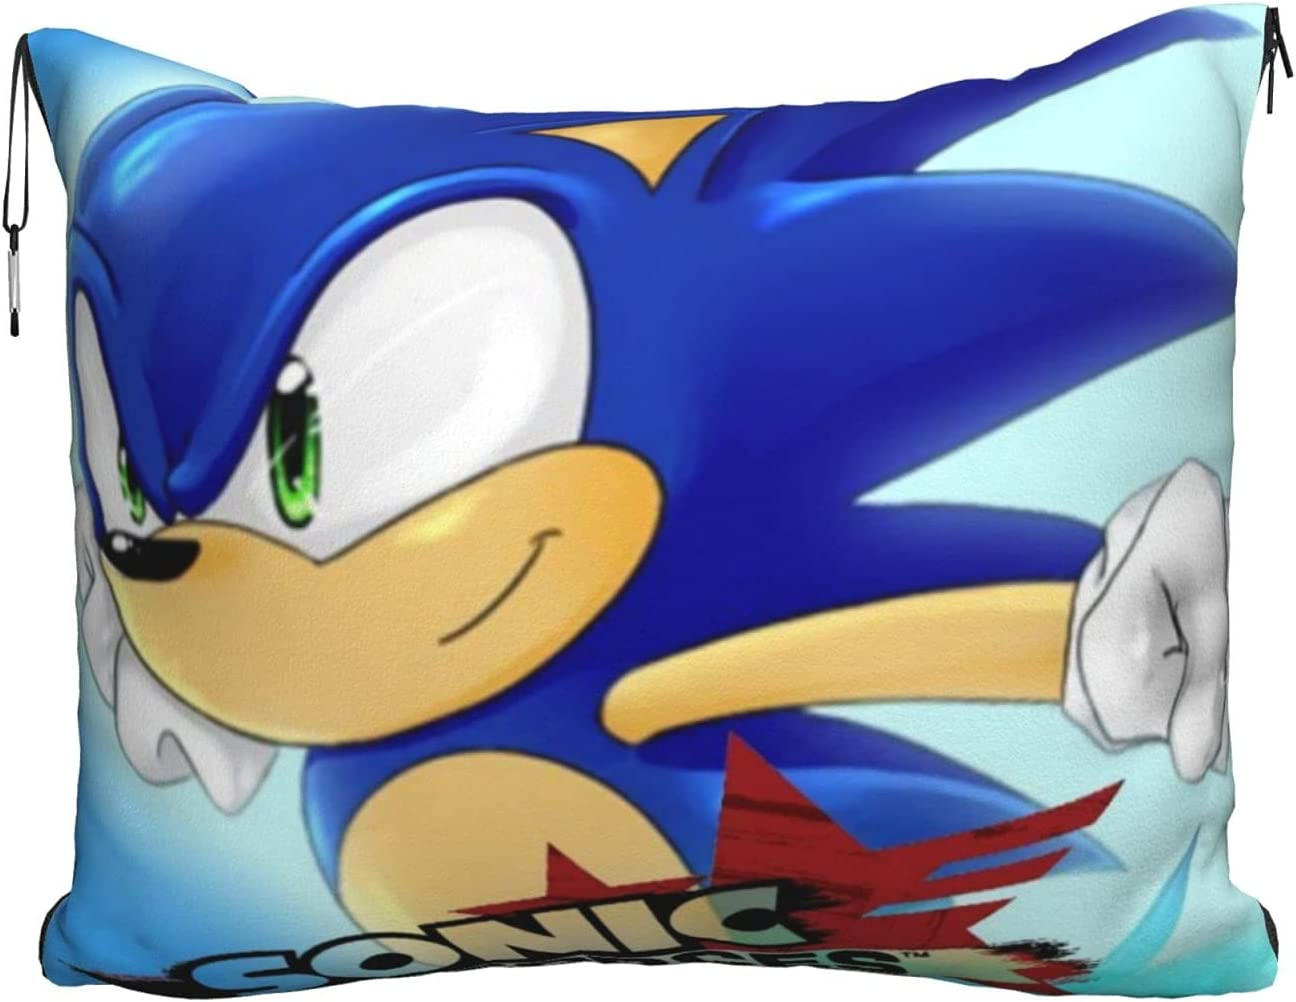 S-onic The Hedgehog Premium 40% OFF Cheap Sale Soft Blanket Pillow New product Airplane Travel